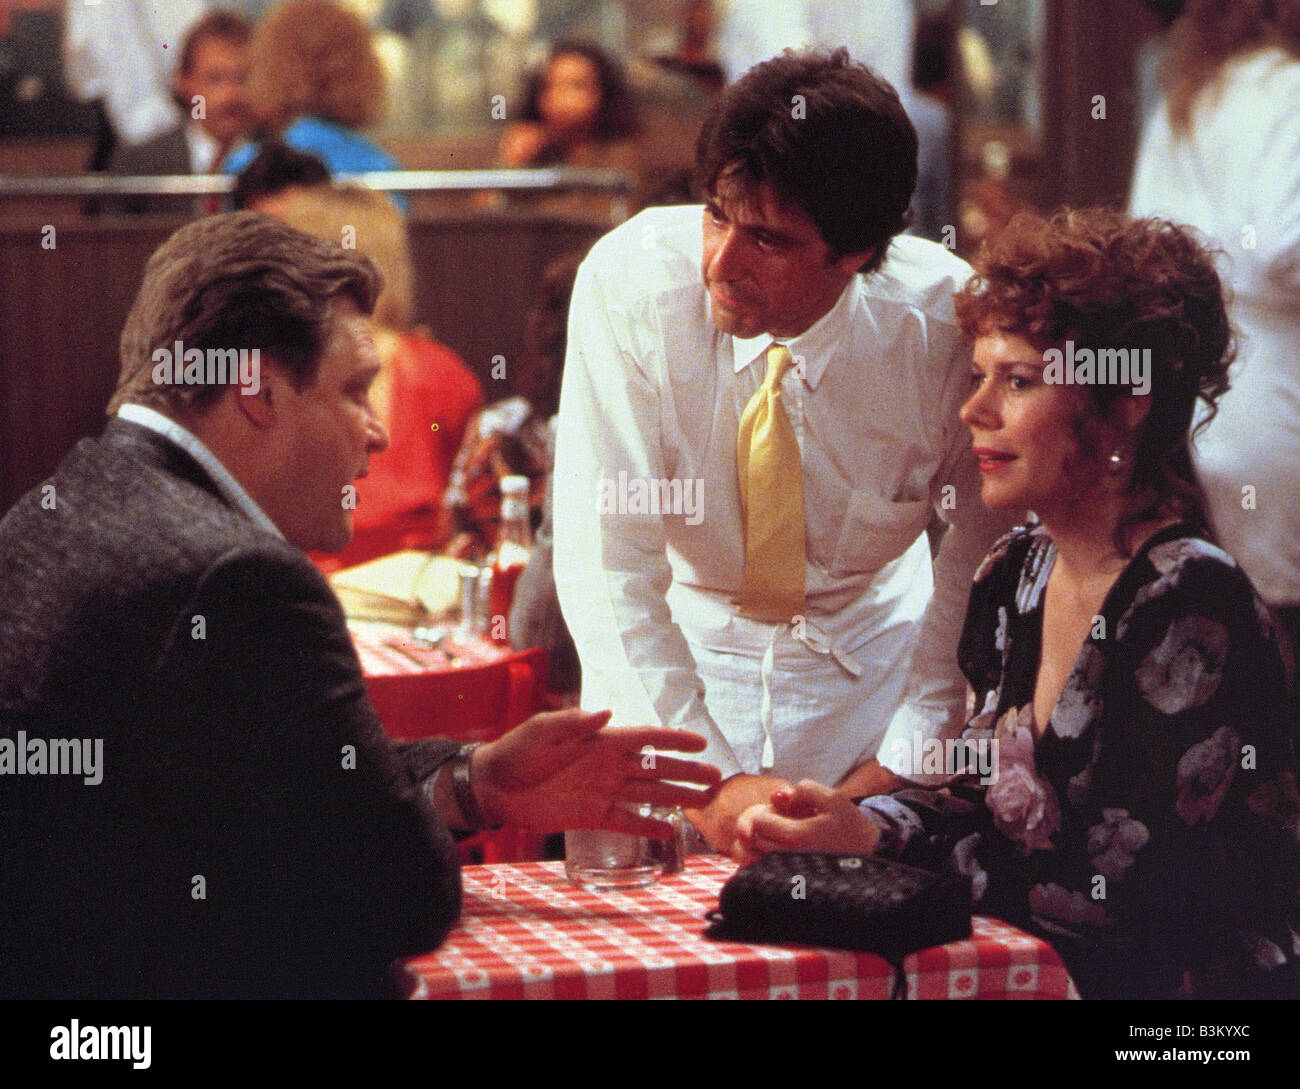 SEA OF LOVE 1989 Universal film with Al Pacino as the ...